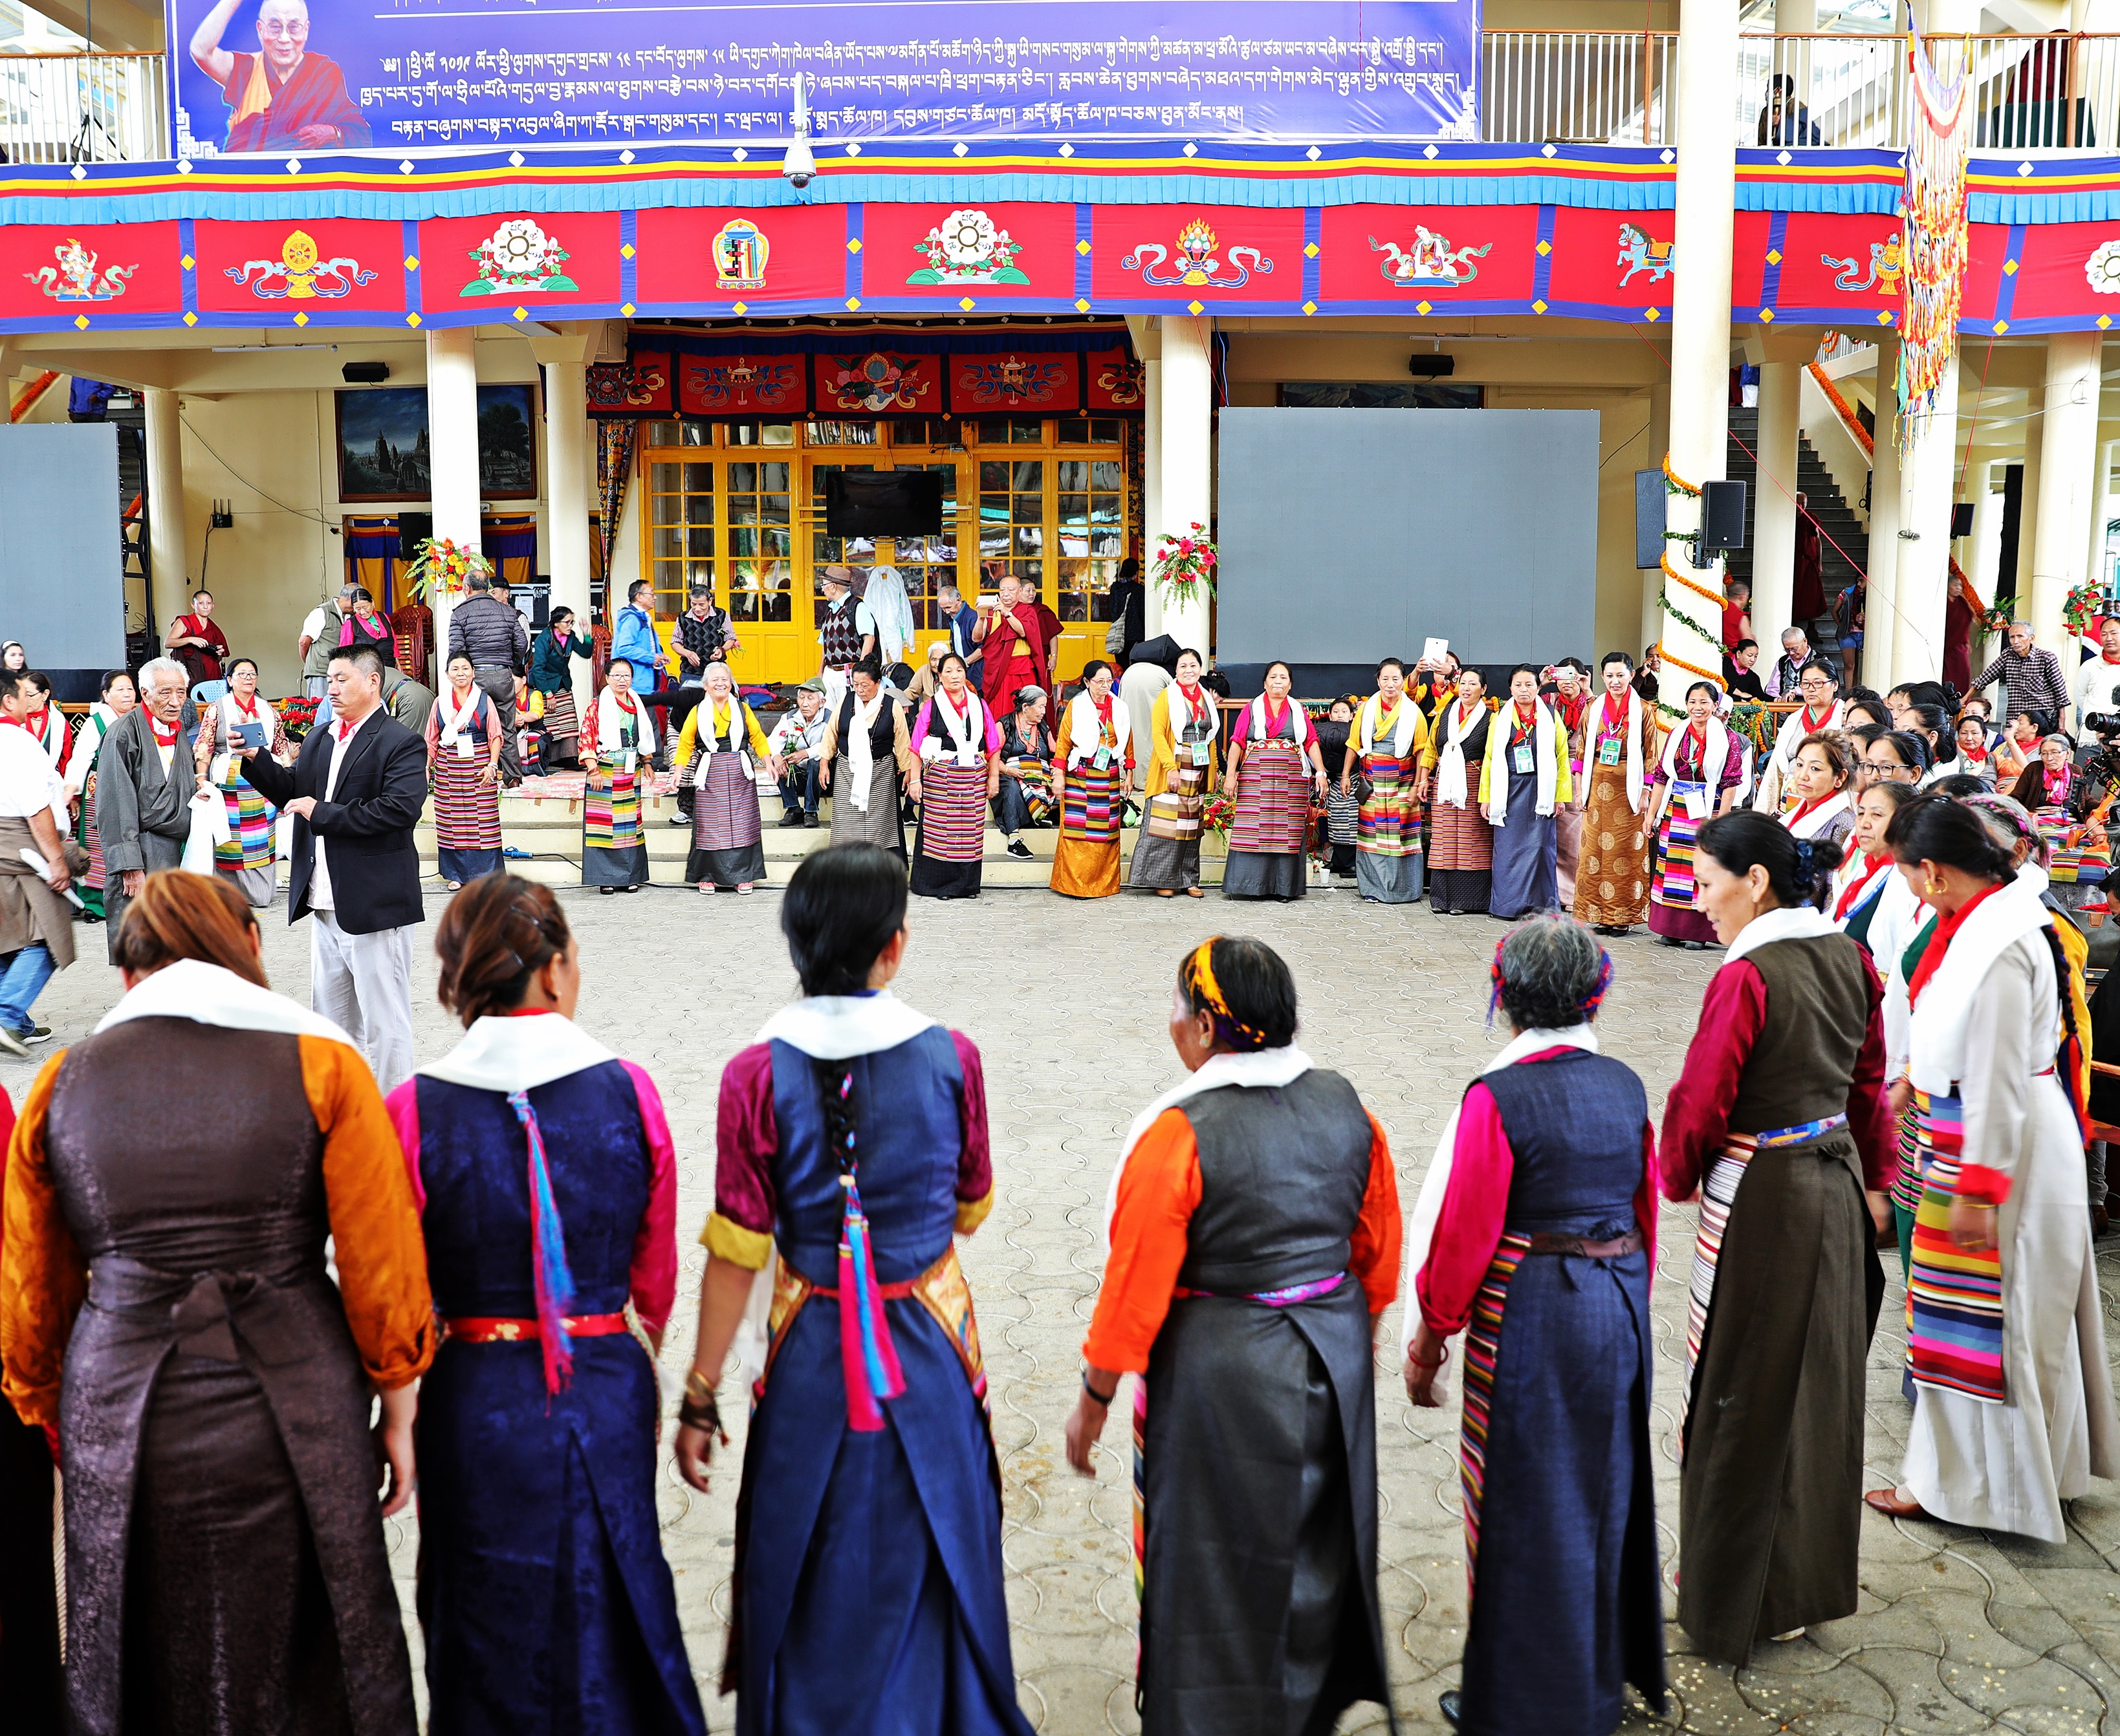 Tibetans dancing in the Tsuglagkhang Complex